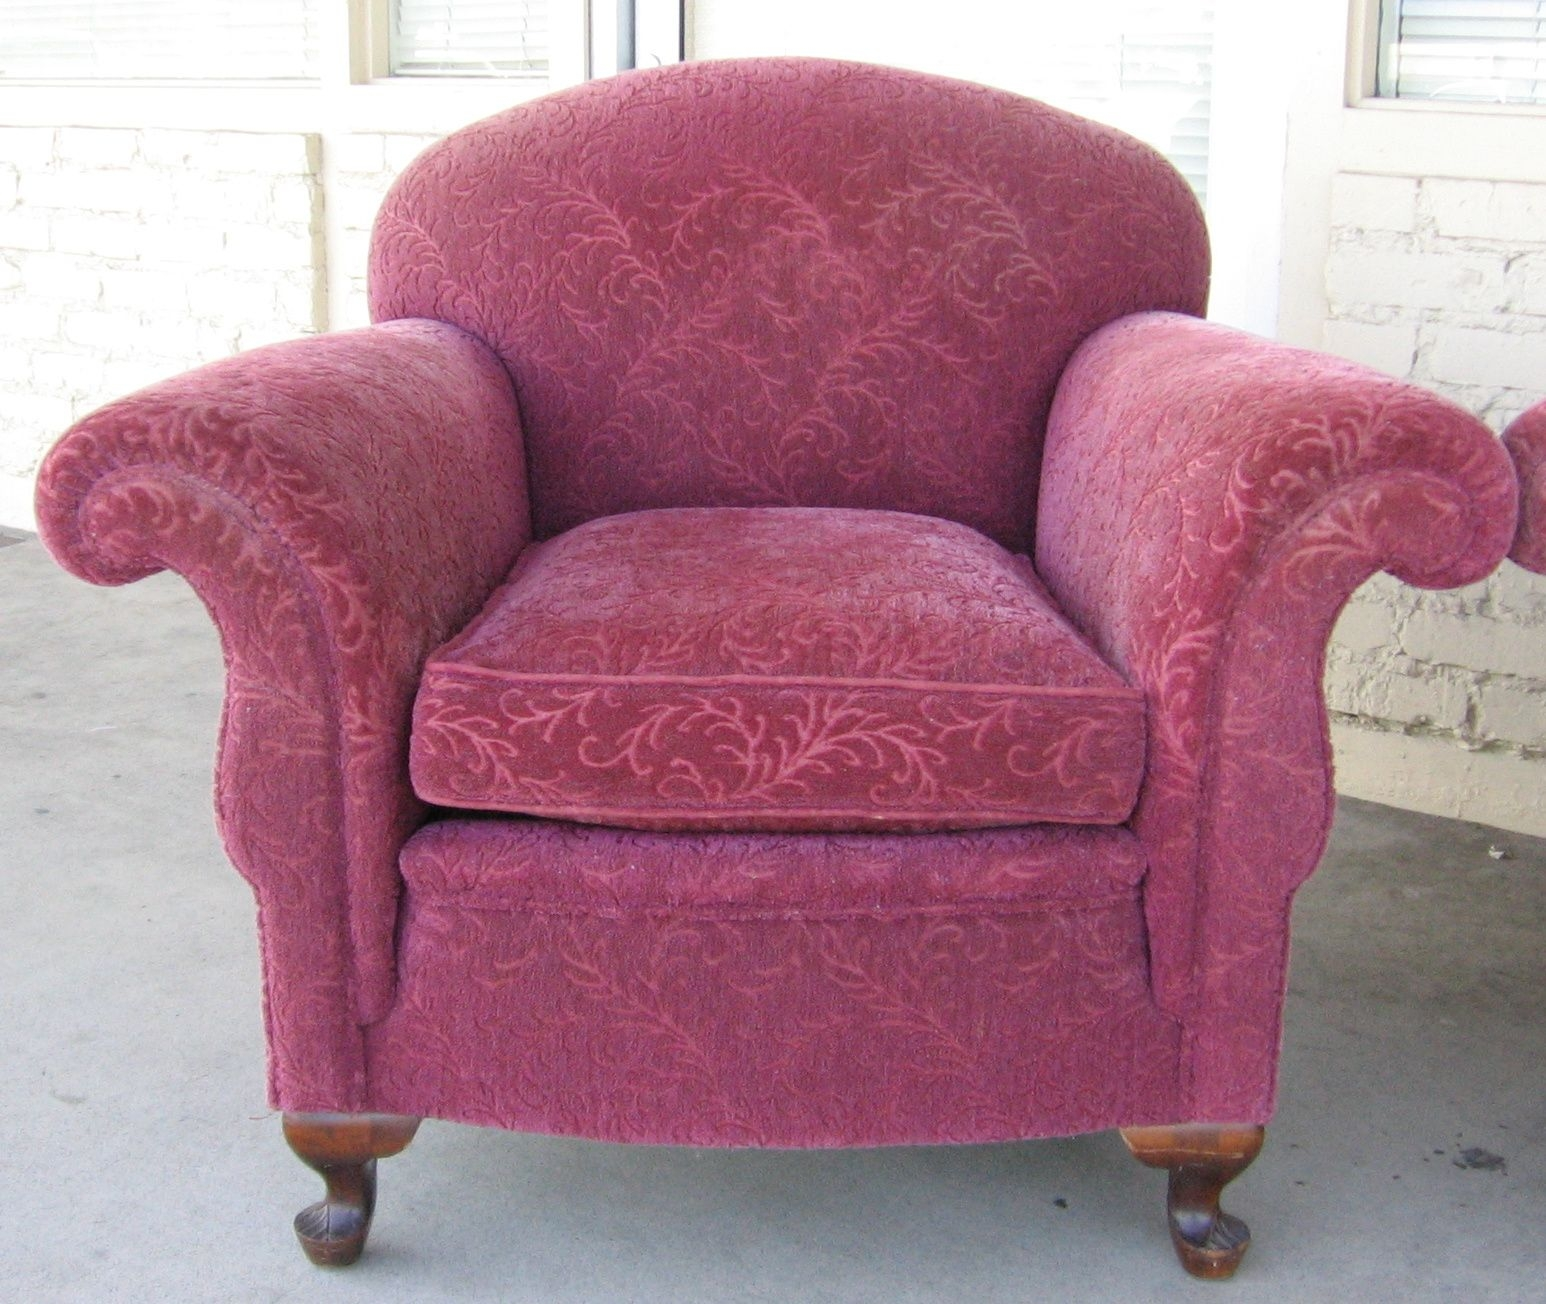 1930s Upholstered Furniture Images Google Search 1930s Throughout Overstuffed Sofas And Chairs (View 3 of 15)